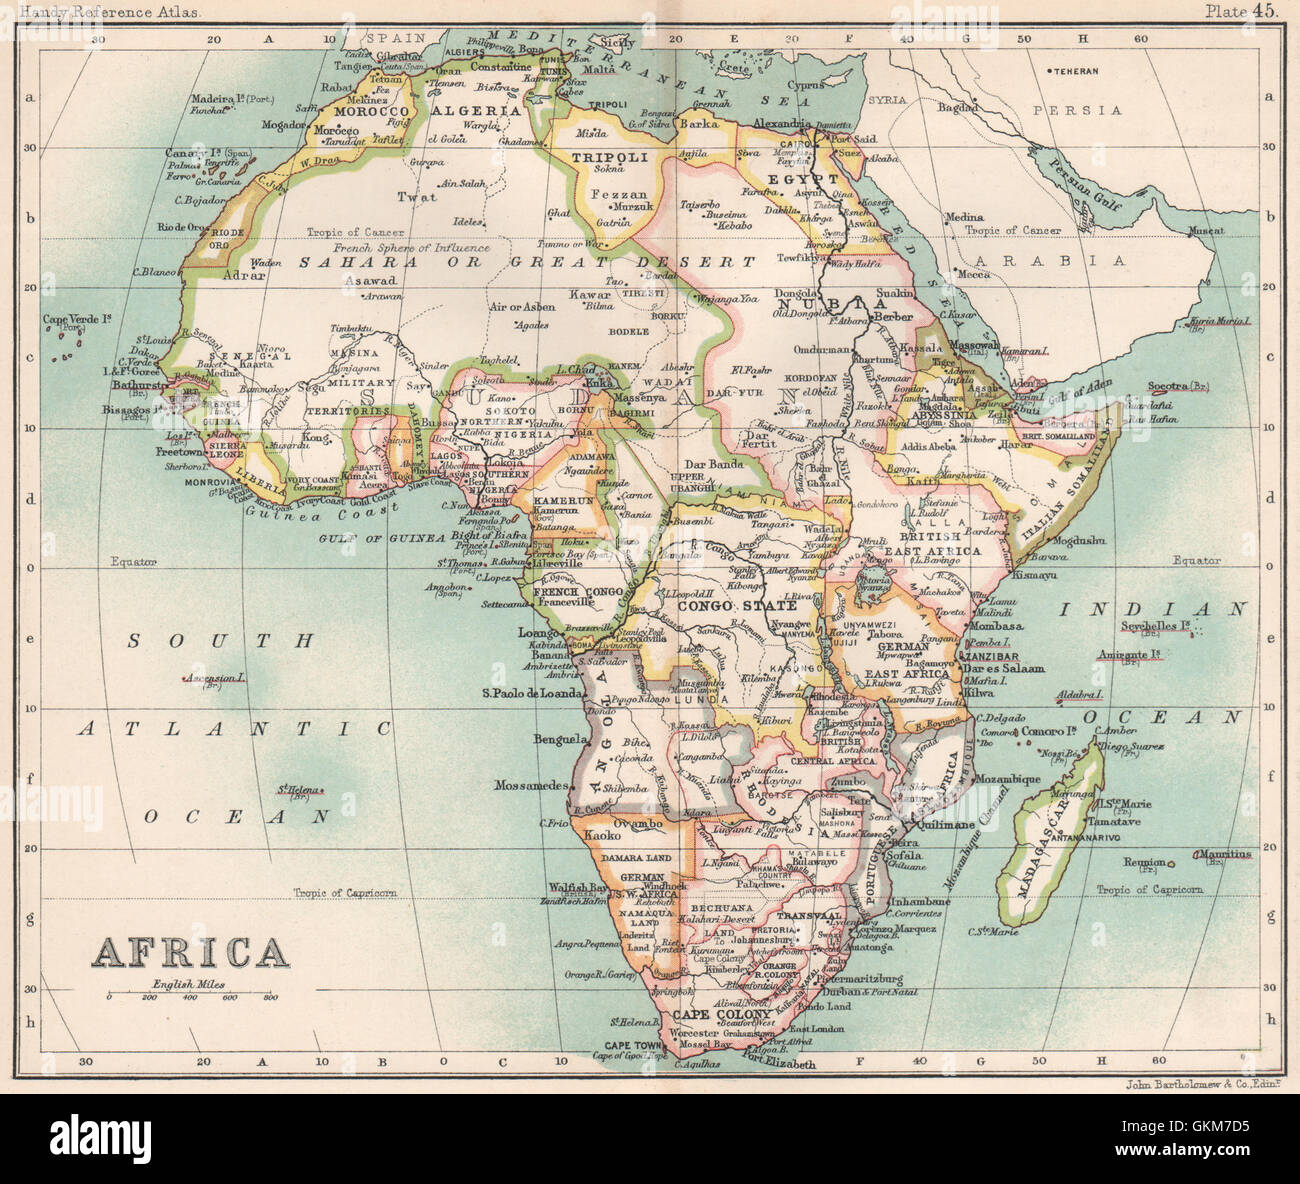 Africa. Congo State. British/German East Africa. Cape Colony, 1904